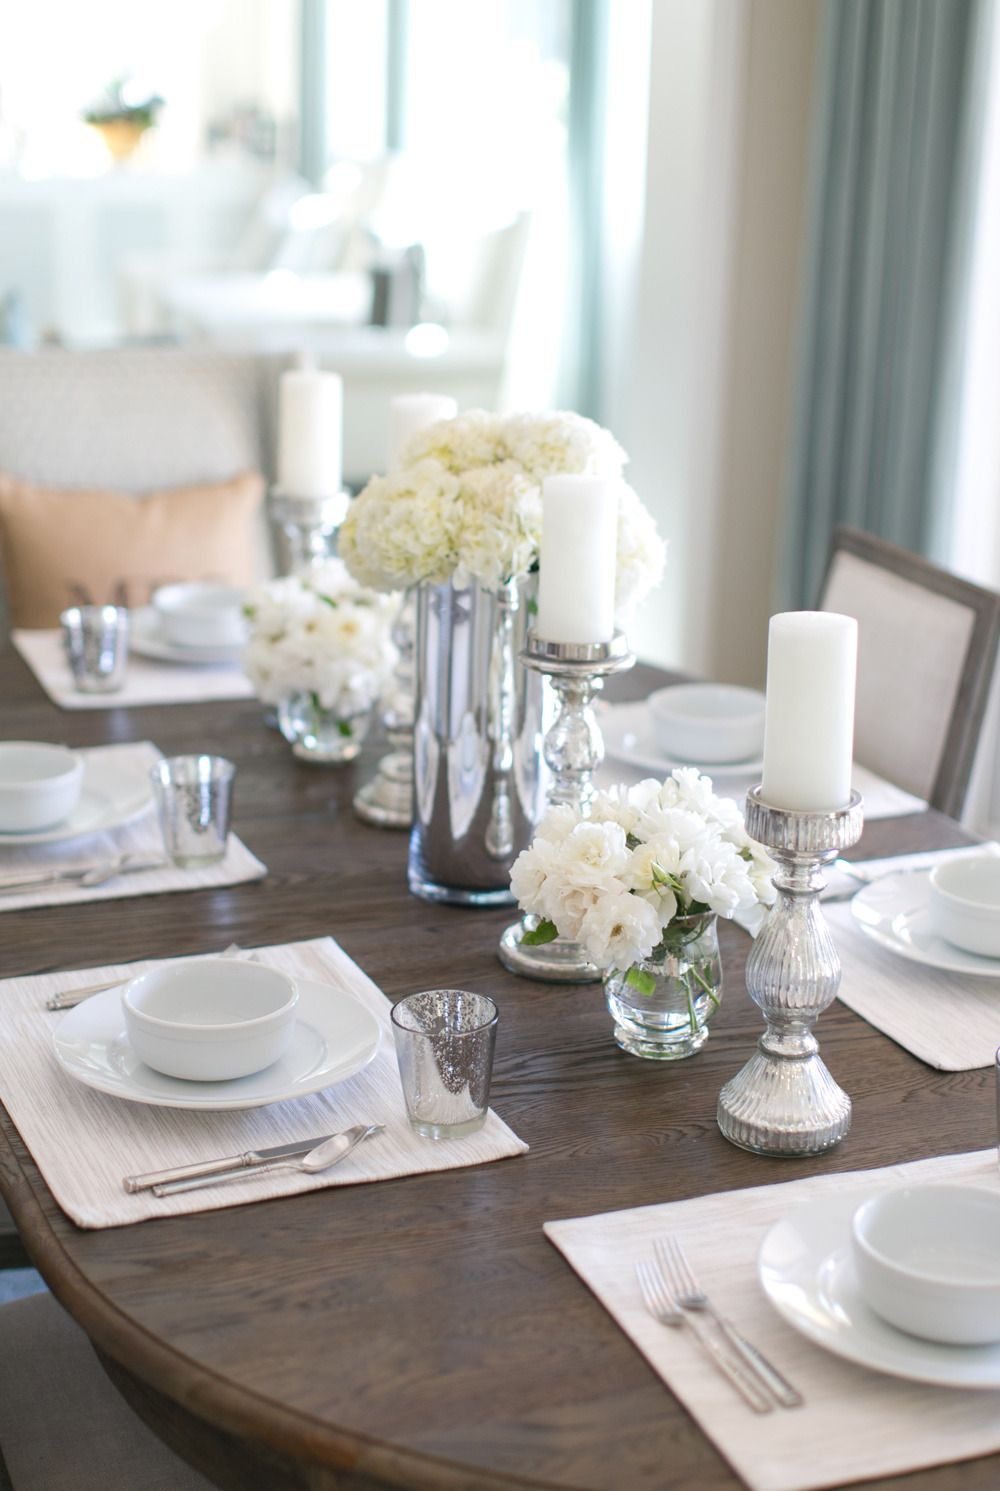 Charlotte hales home tour read more http www - Dinner table decoration ideas ...